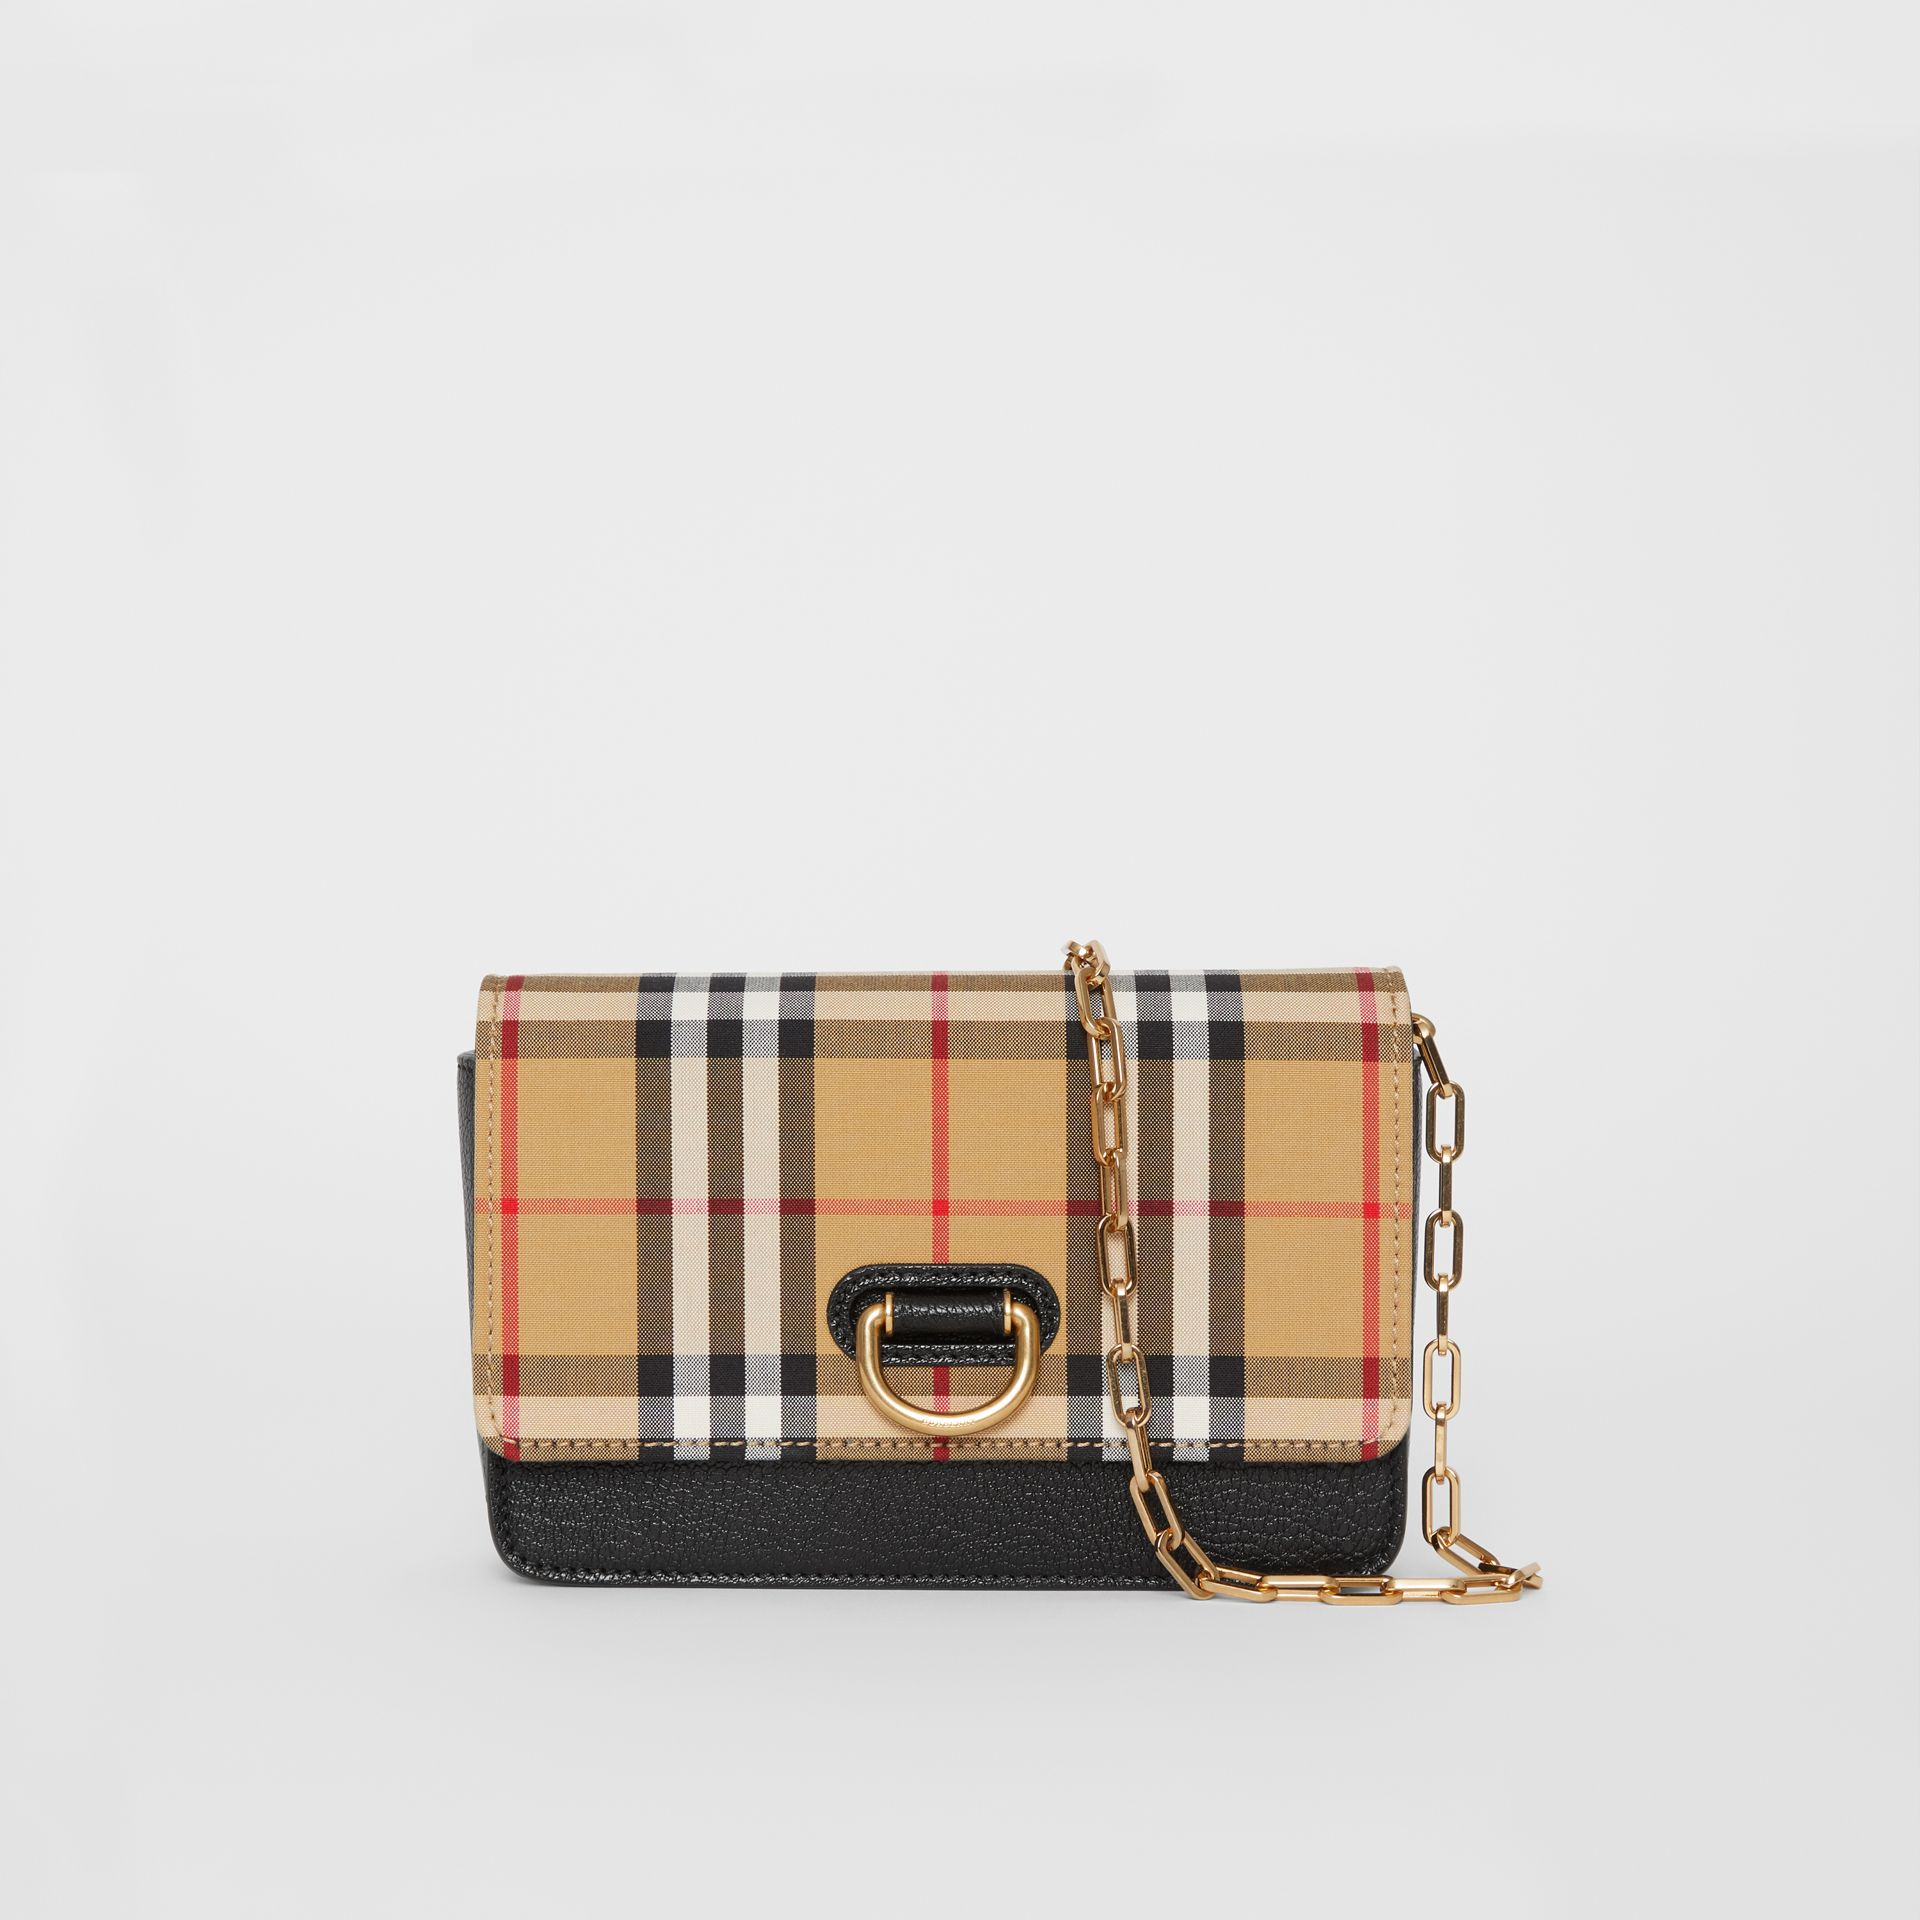 Borsa The D-ring mini in pelle con motivo Vintage check (Nero) - Donna | Burberry - immagine della galleria 0